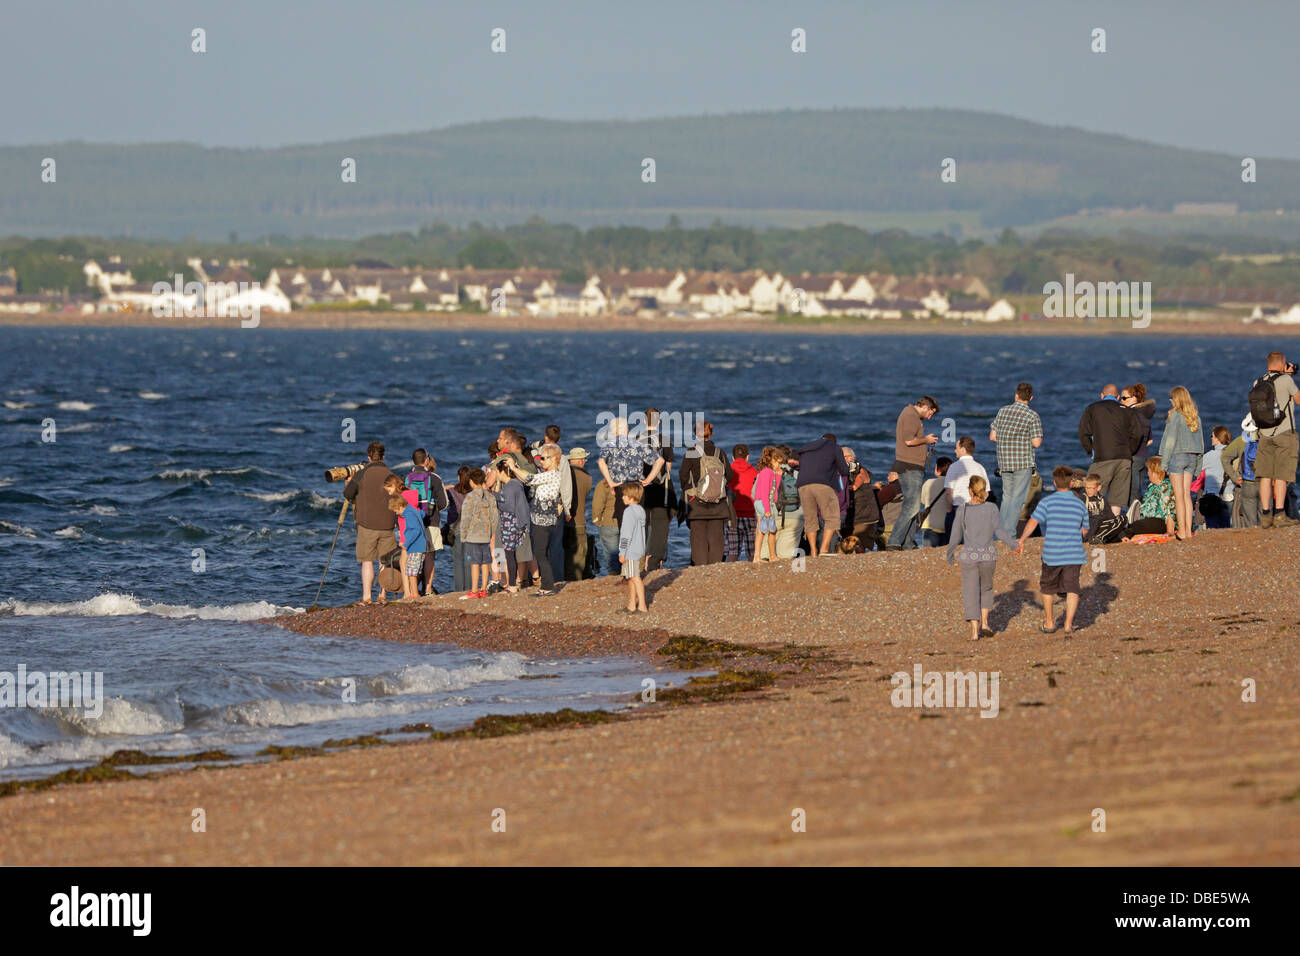 People waiting to see Bottle Nosed Dolphins at Chanonry Point - Stock Image